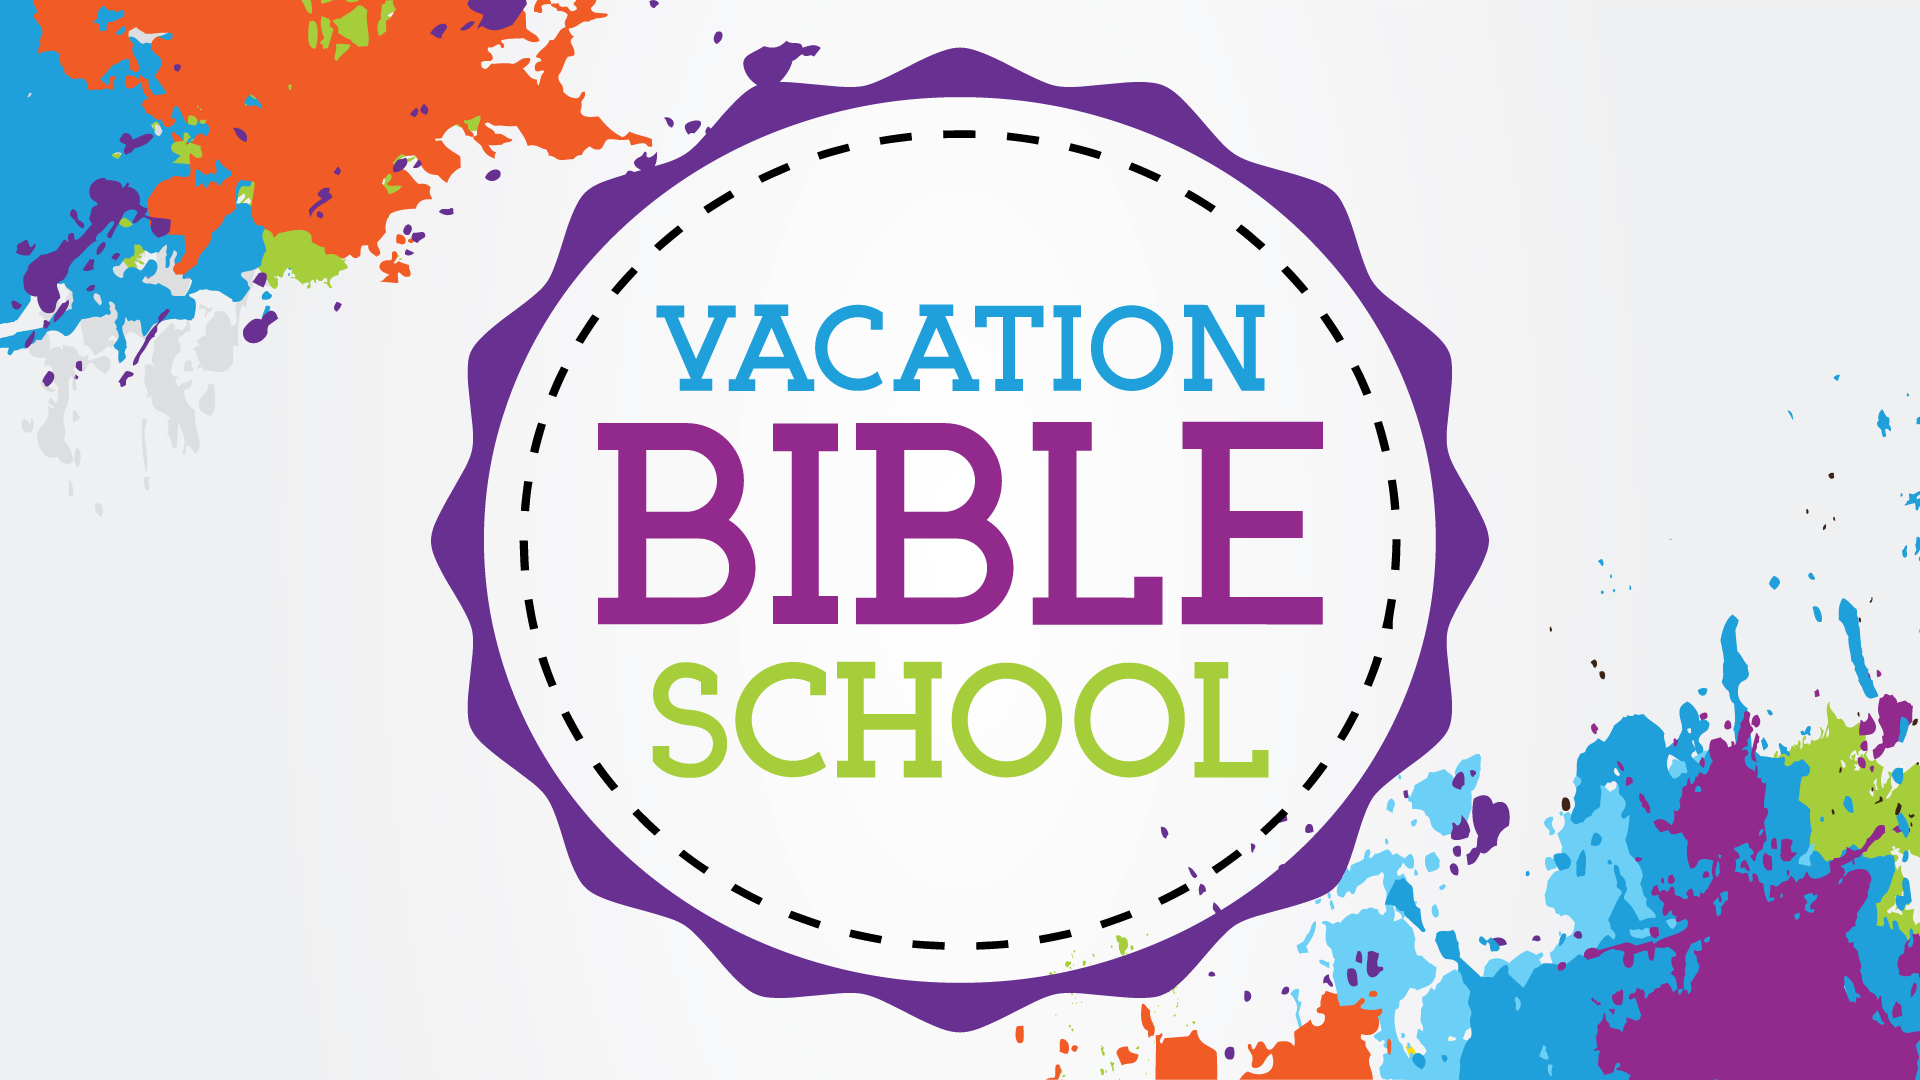 VBS - Vacation Bible School: We do this once a year there is food games, and lessons. We try to get as many kids as we can to come. We plan this event in the summer for good weather conditions.